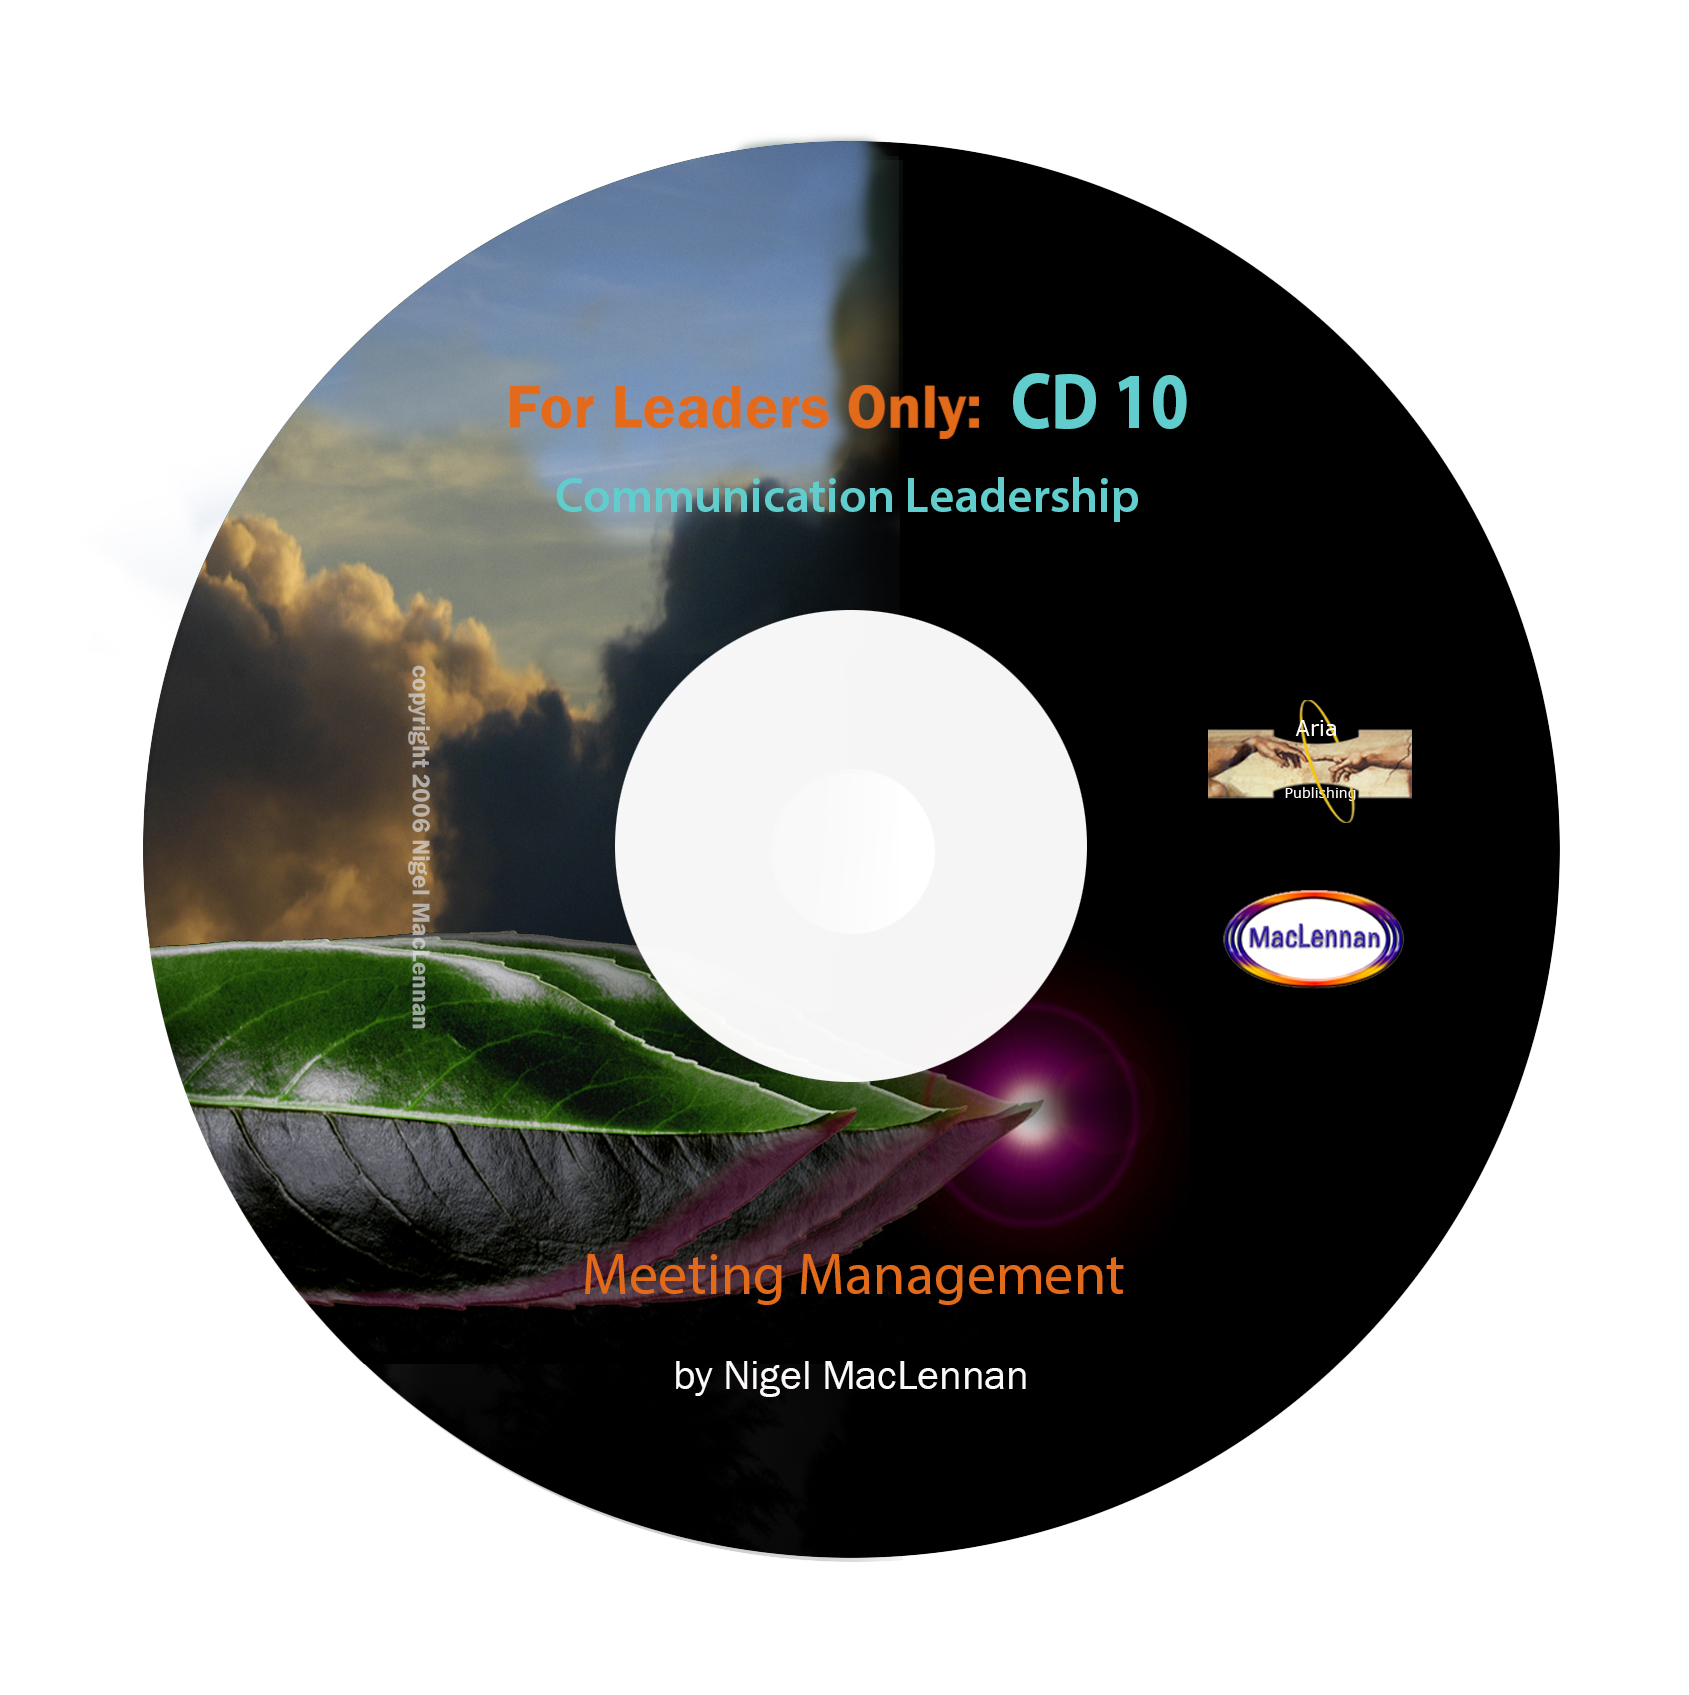 For Leaders Only - Meeting Management CD